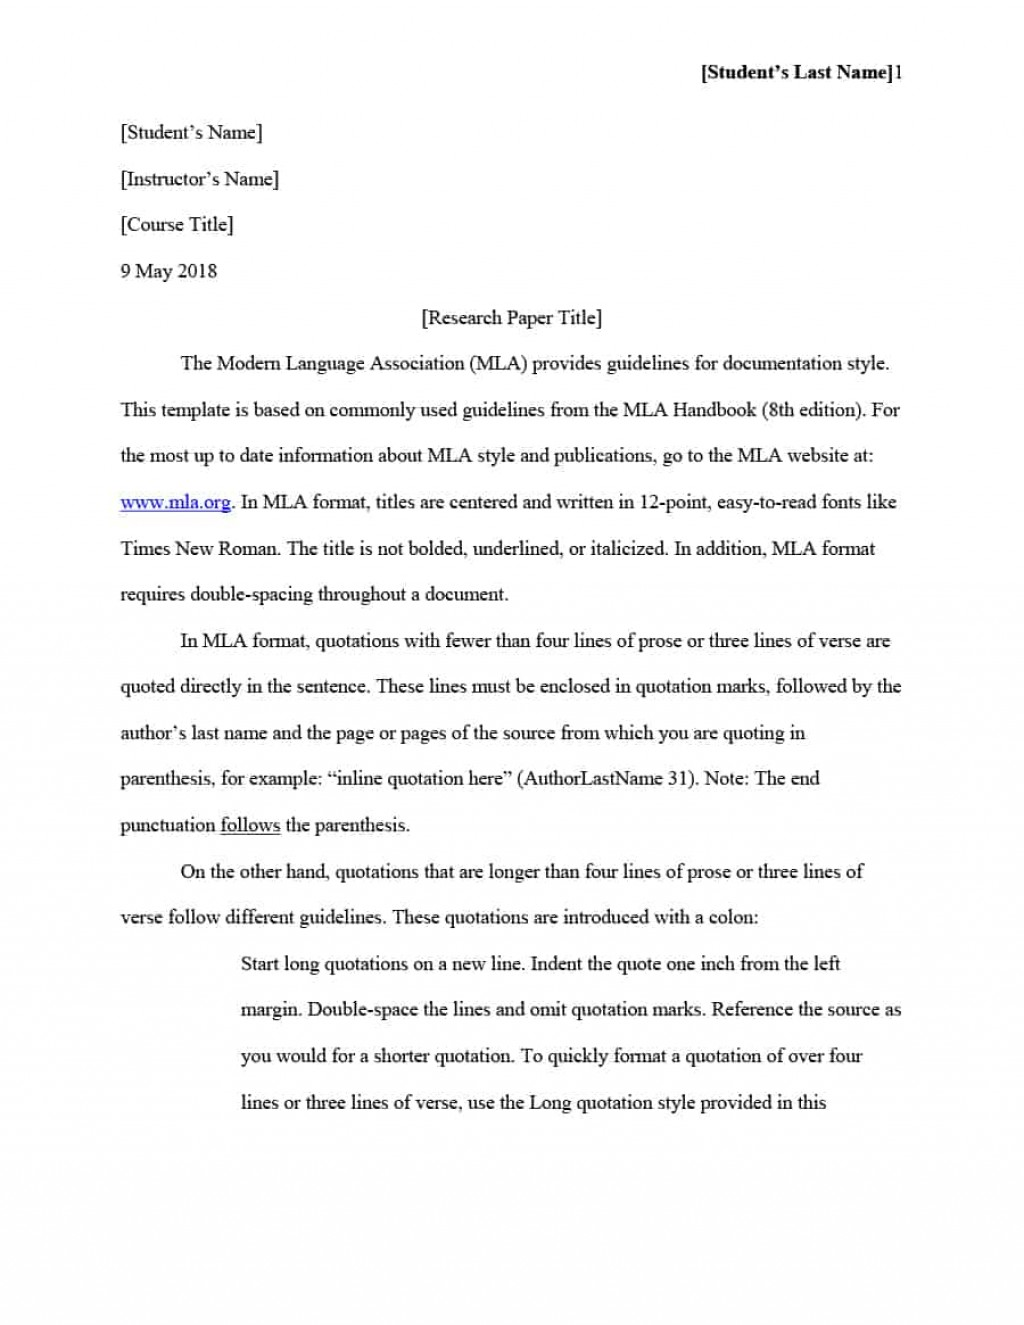 011 First Page Research Paper Mla Format Template Unique Style For The Of A Title Large